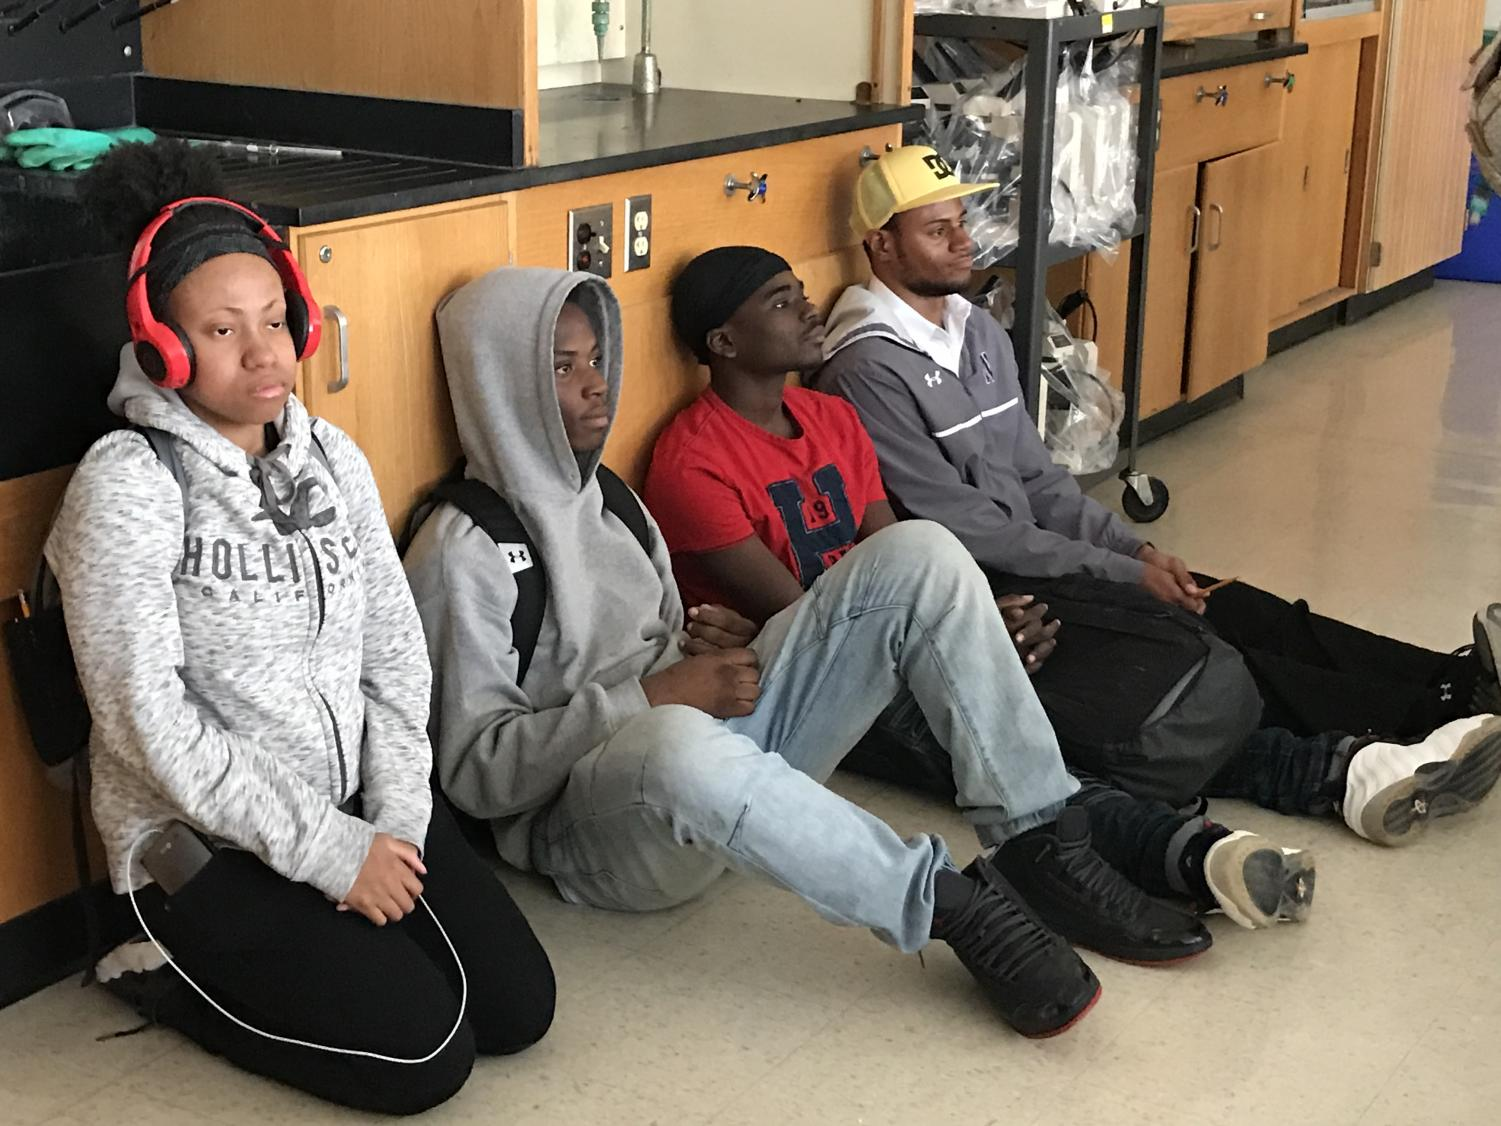 Students sit silently against the wall during the active-shooter drill